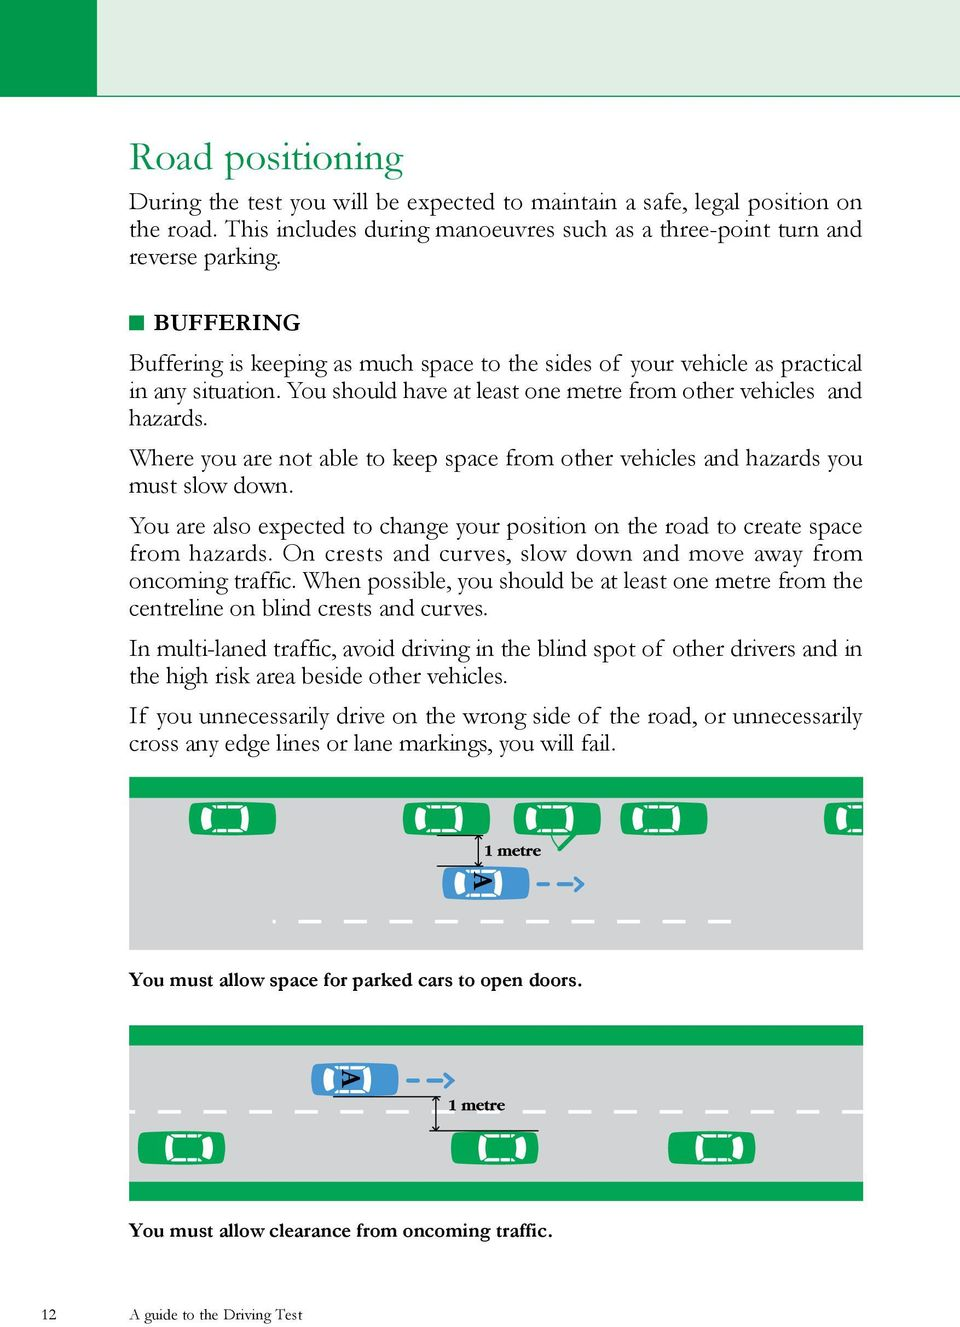 Where you are not able to keep space from other vehicles and hazards you must slow down. You are also expected to change your position on the road to create space from hazards.